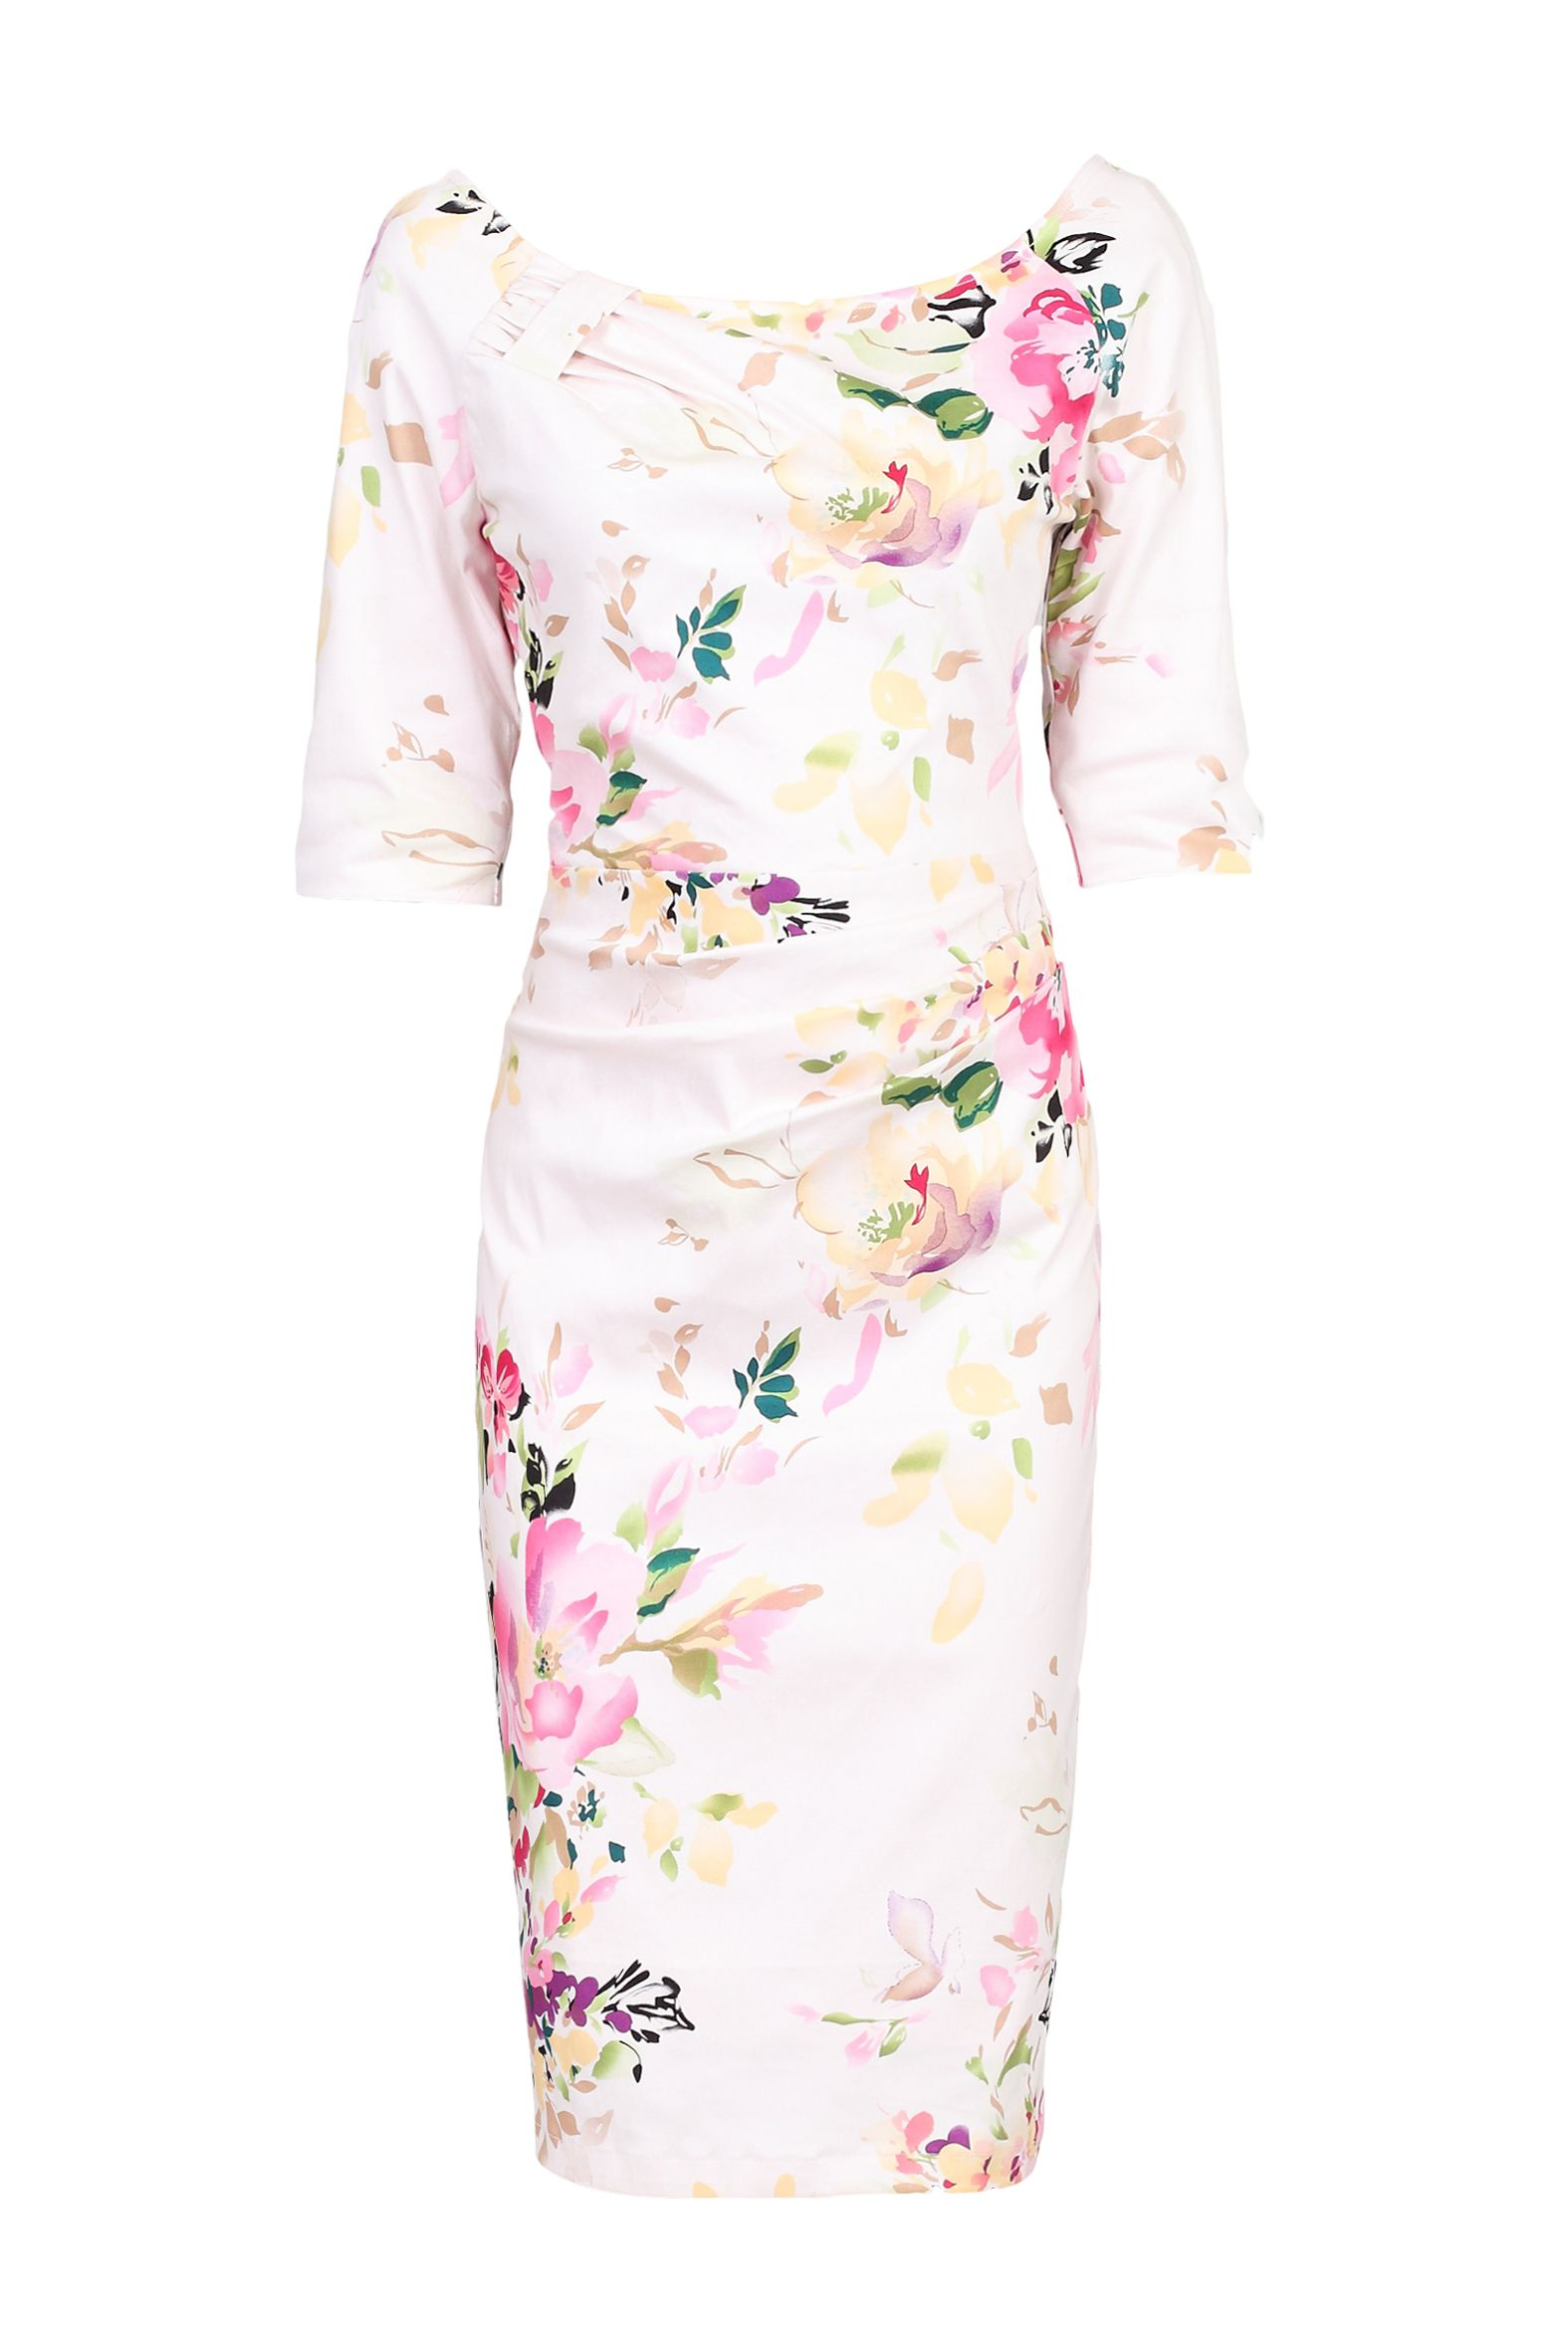 Jolie Moi Retro Floral Print Half Sleeve Dress, Pink